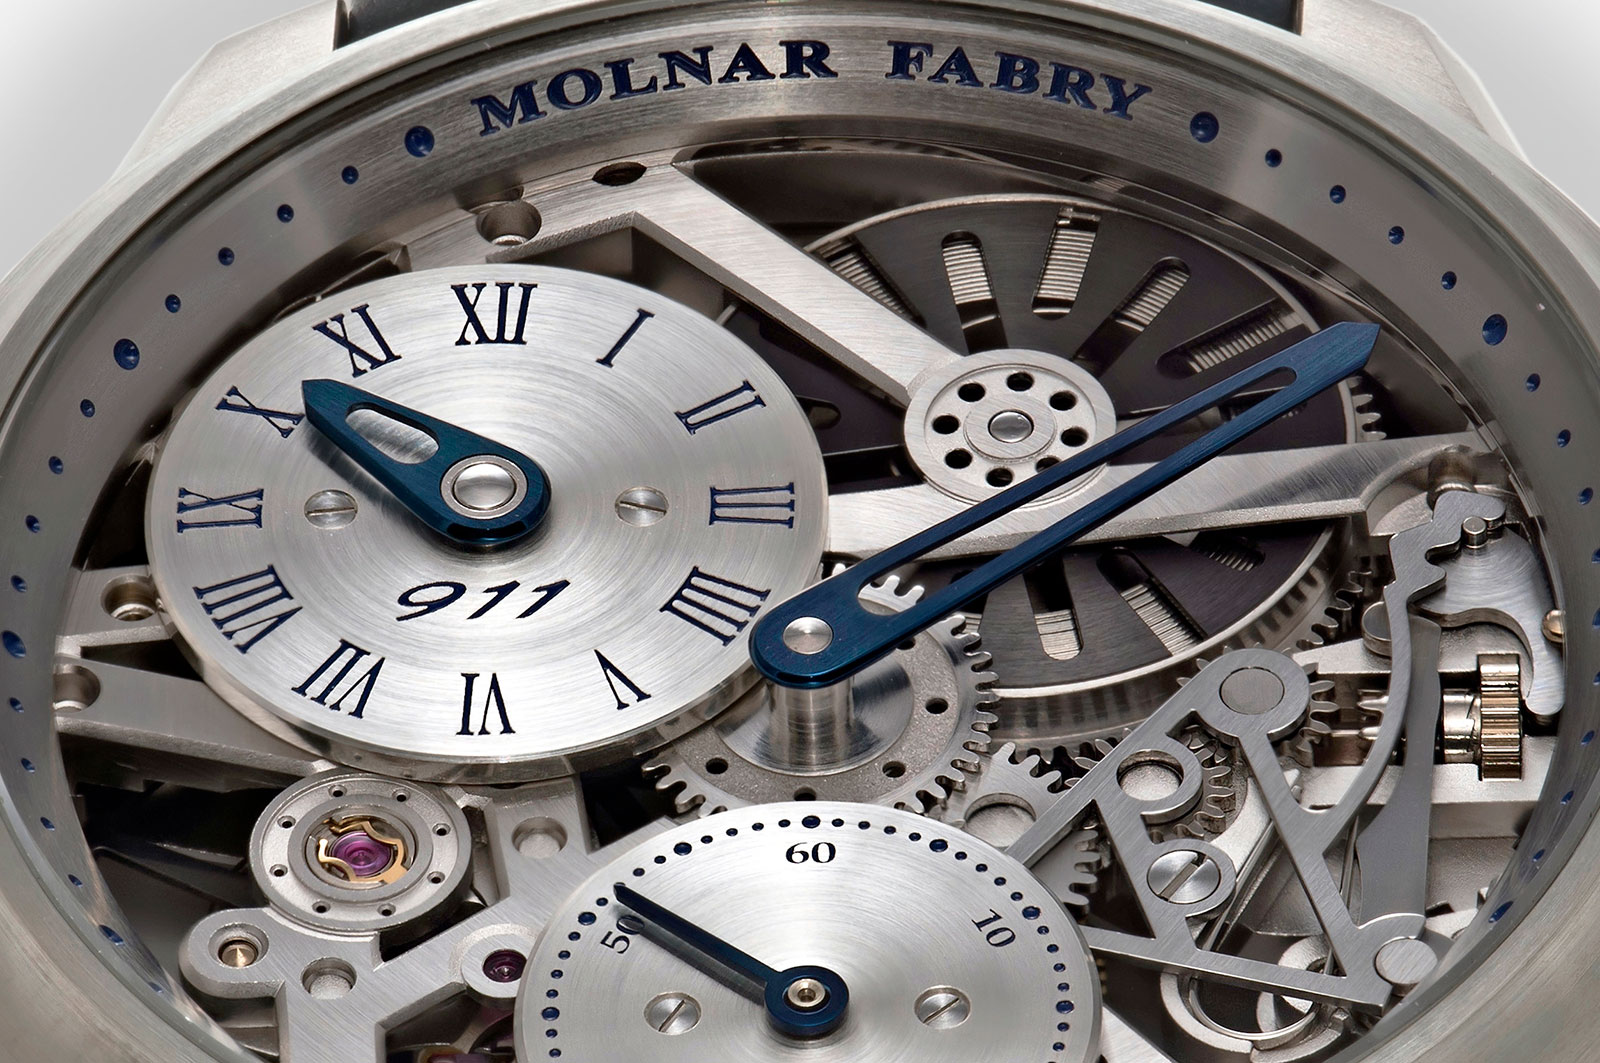 Molnar Fabry Time Machine Regulator 911 2